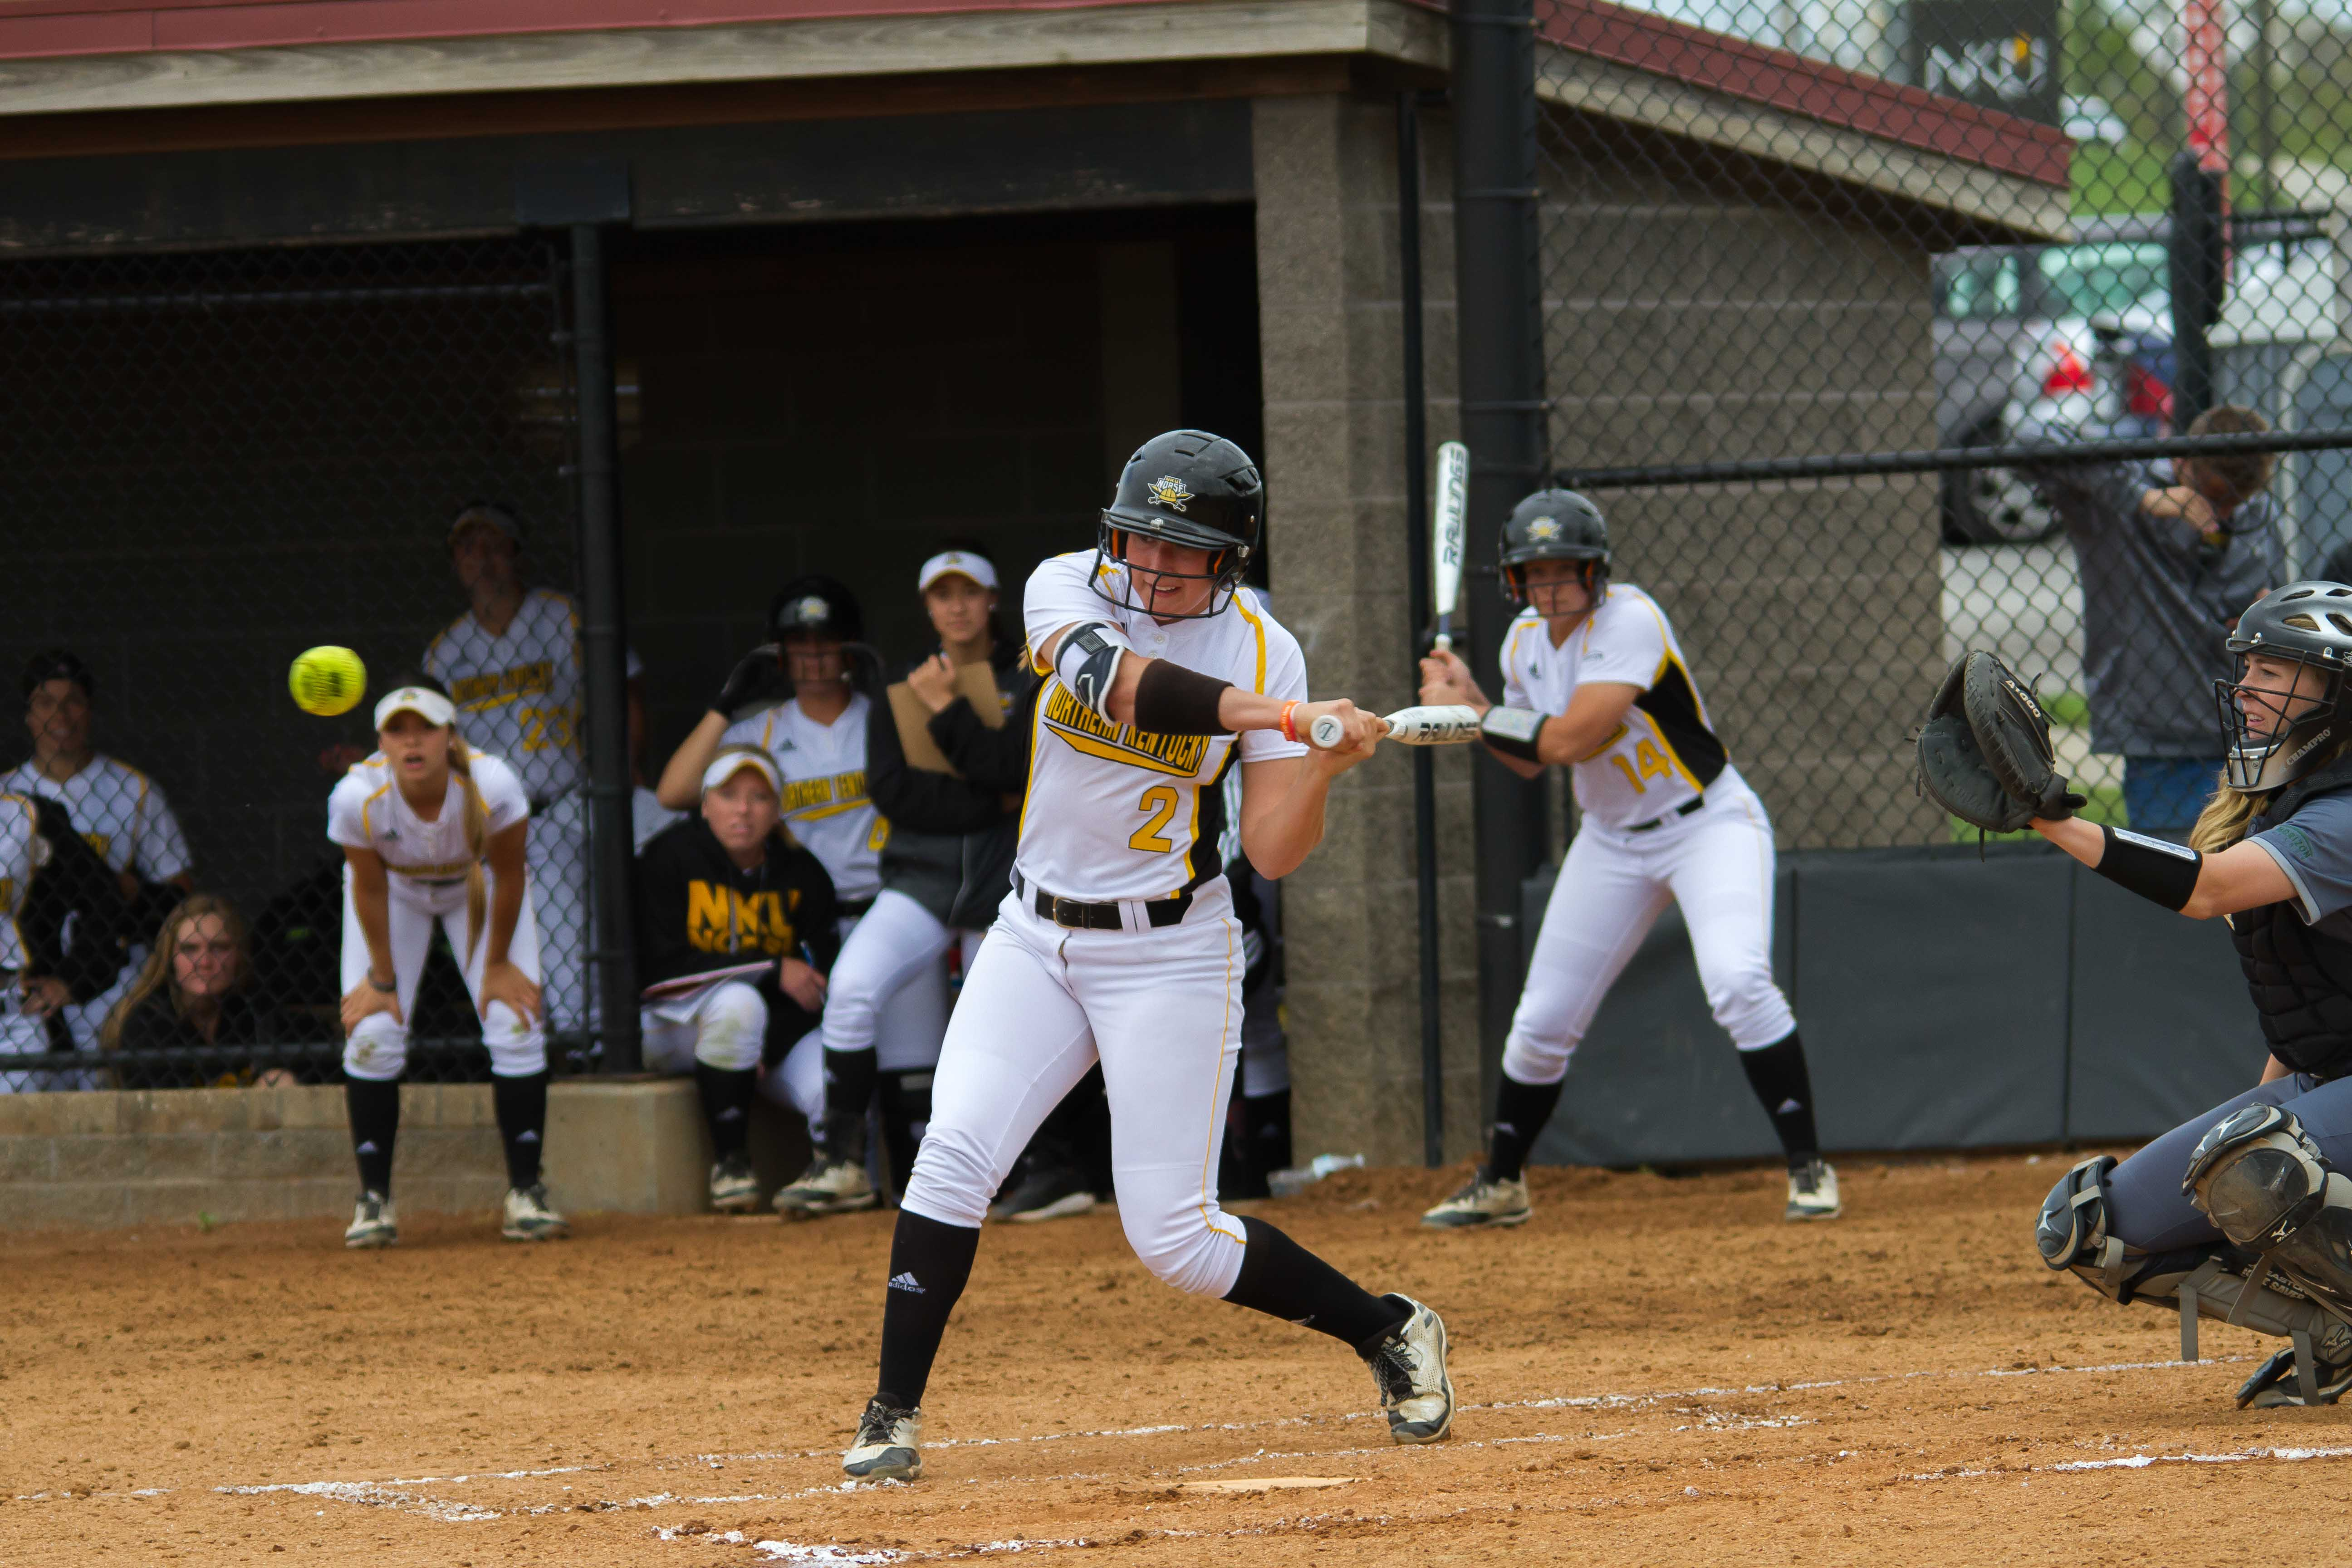 Ava Lawson swings at a pitch high in the zone against Cleveland State